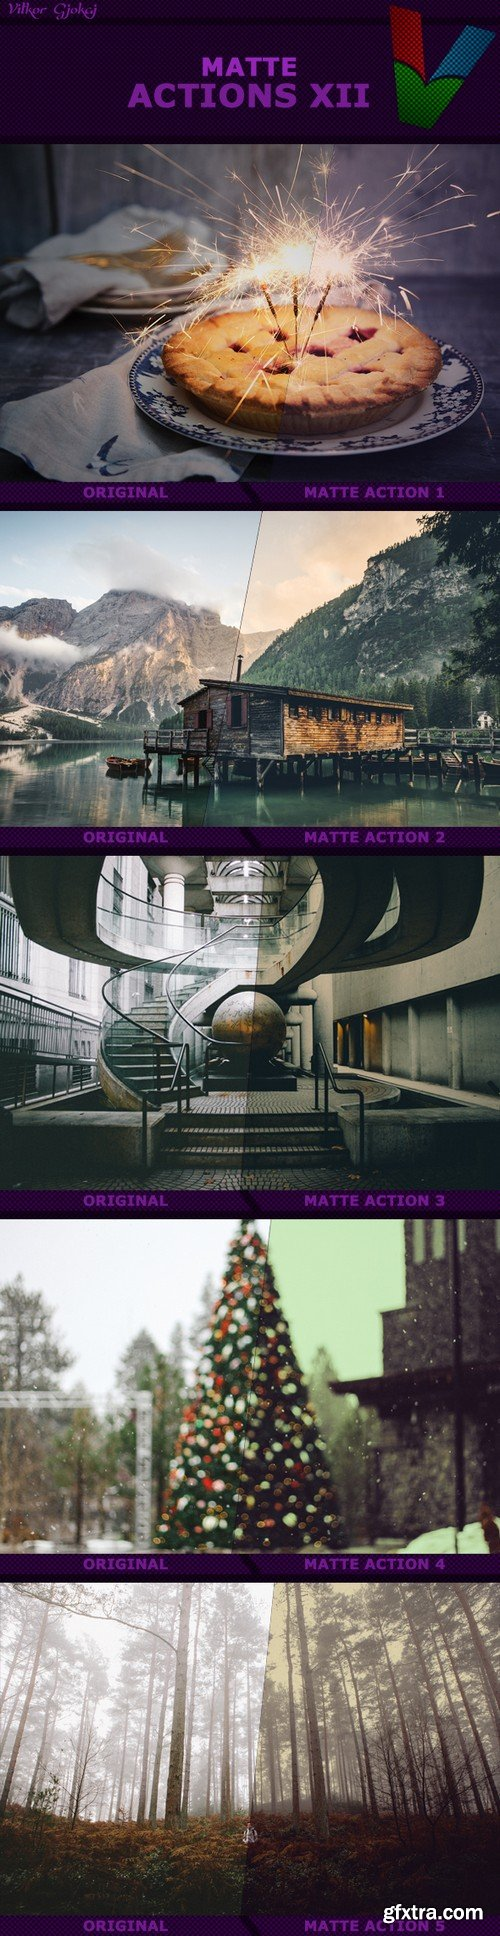 Graphicriver - Matte Actions XII 19213559